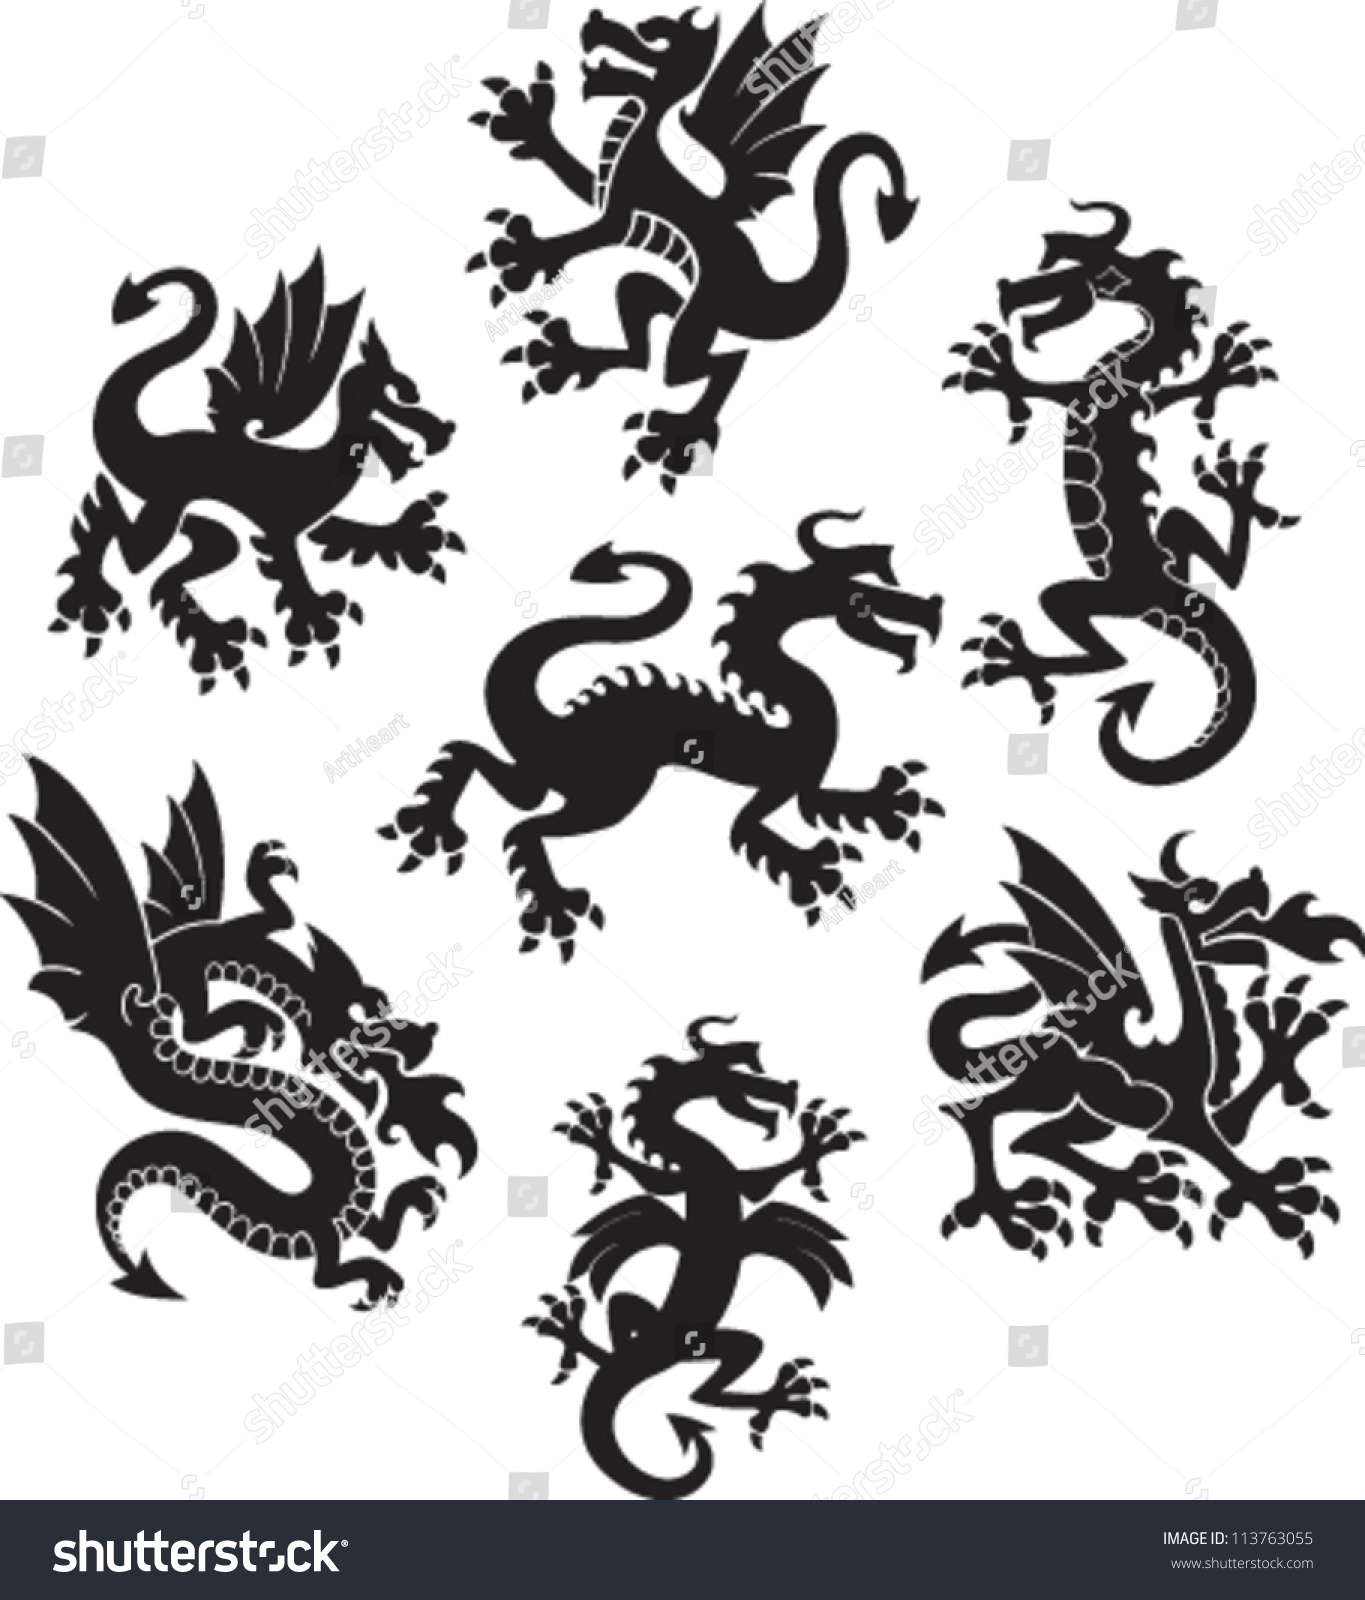 set of medieval dragon symbols stock vector illustration